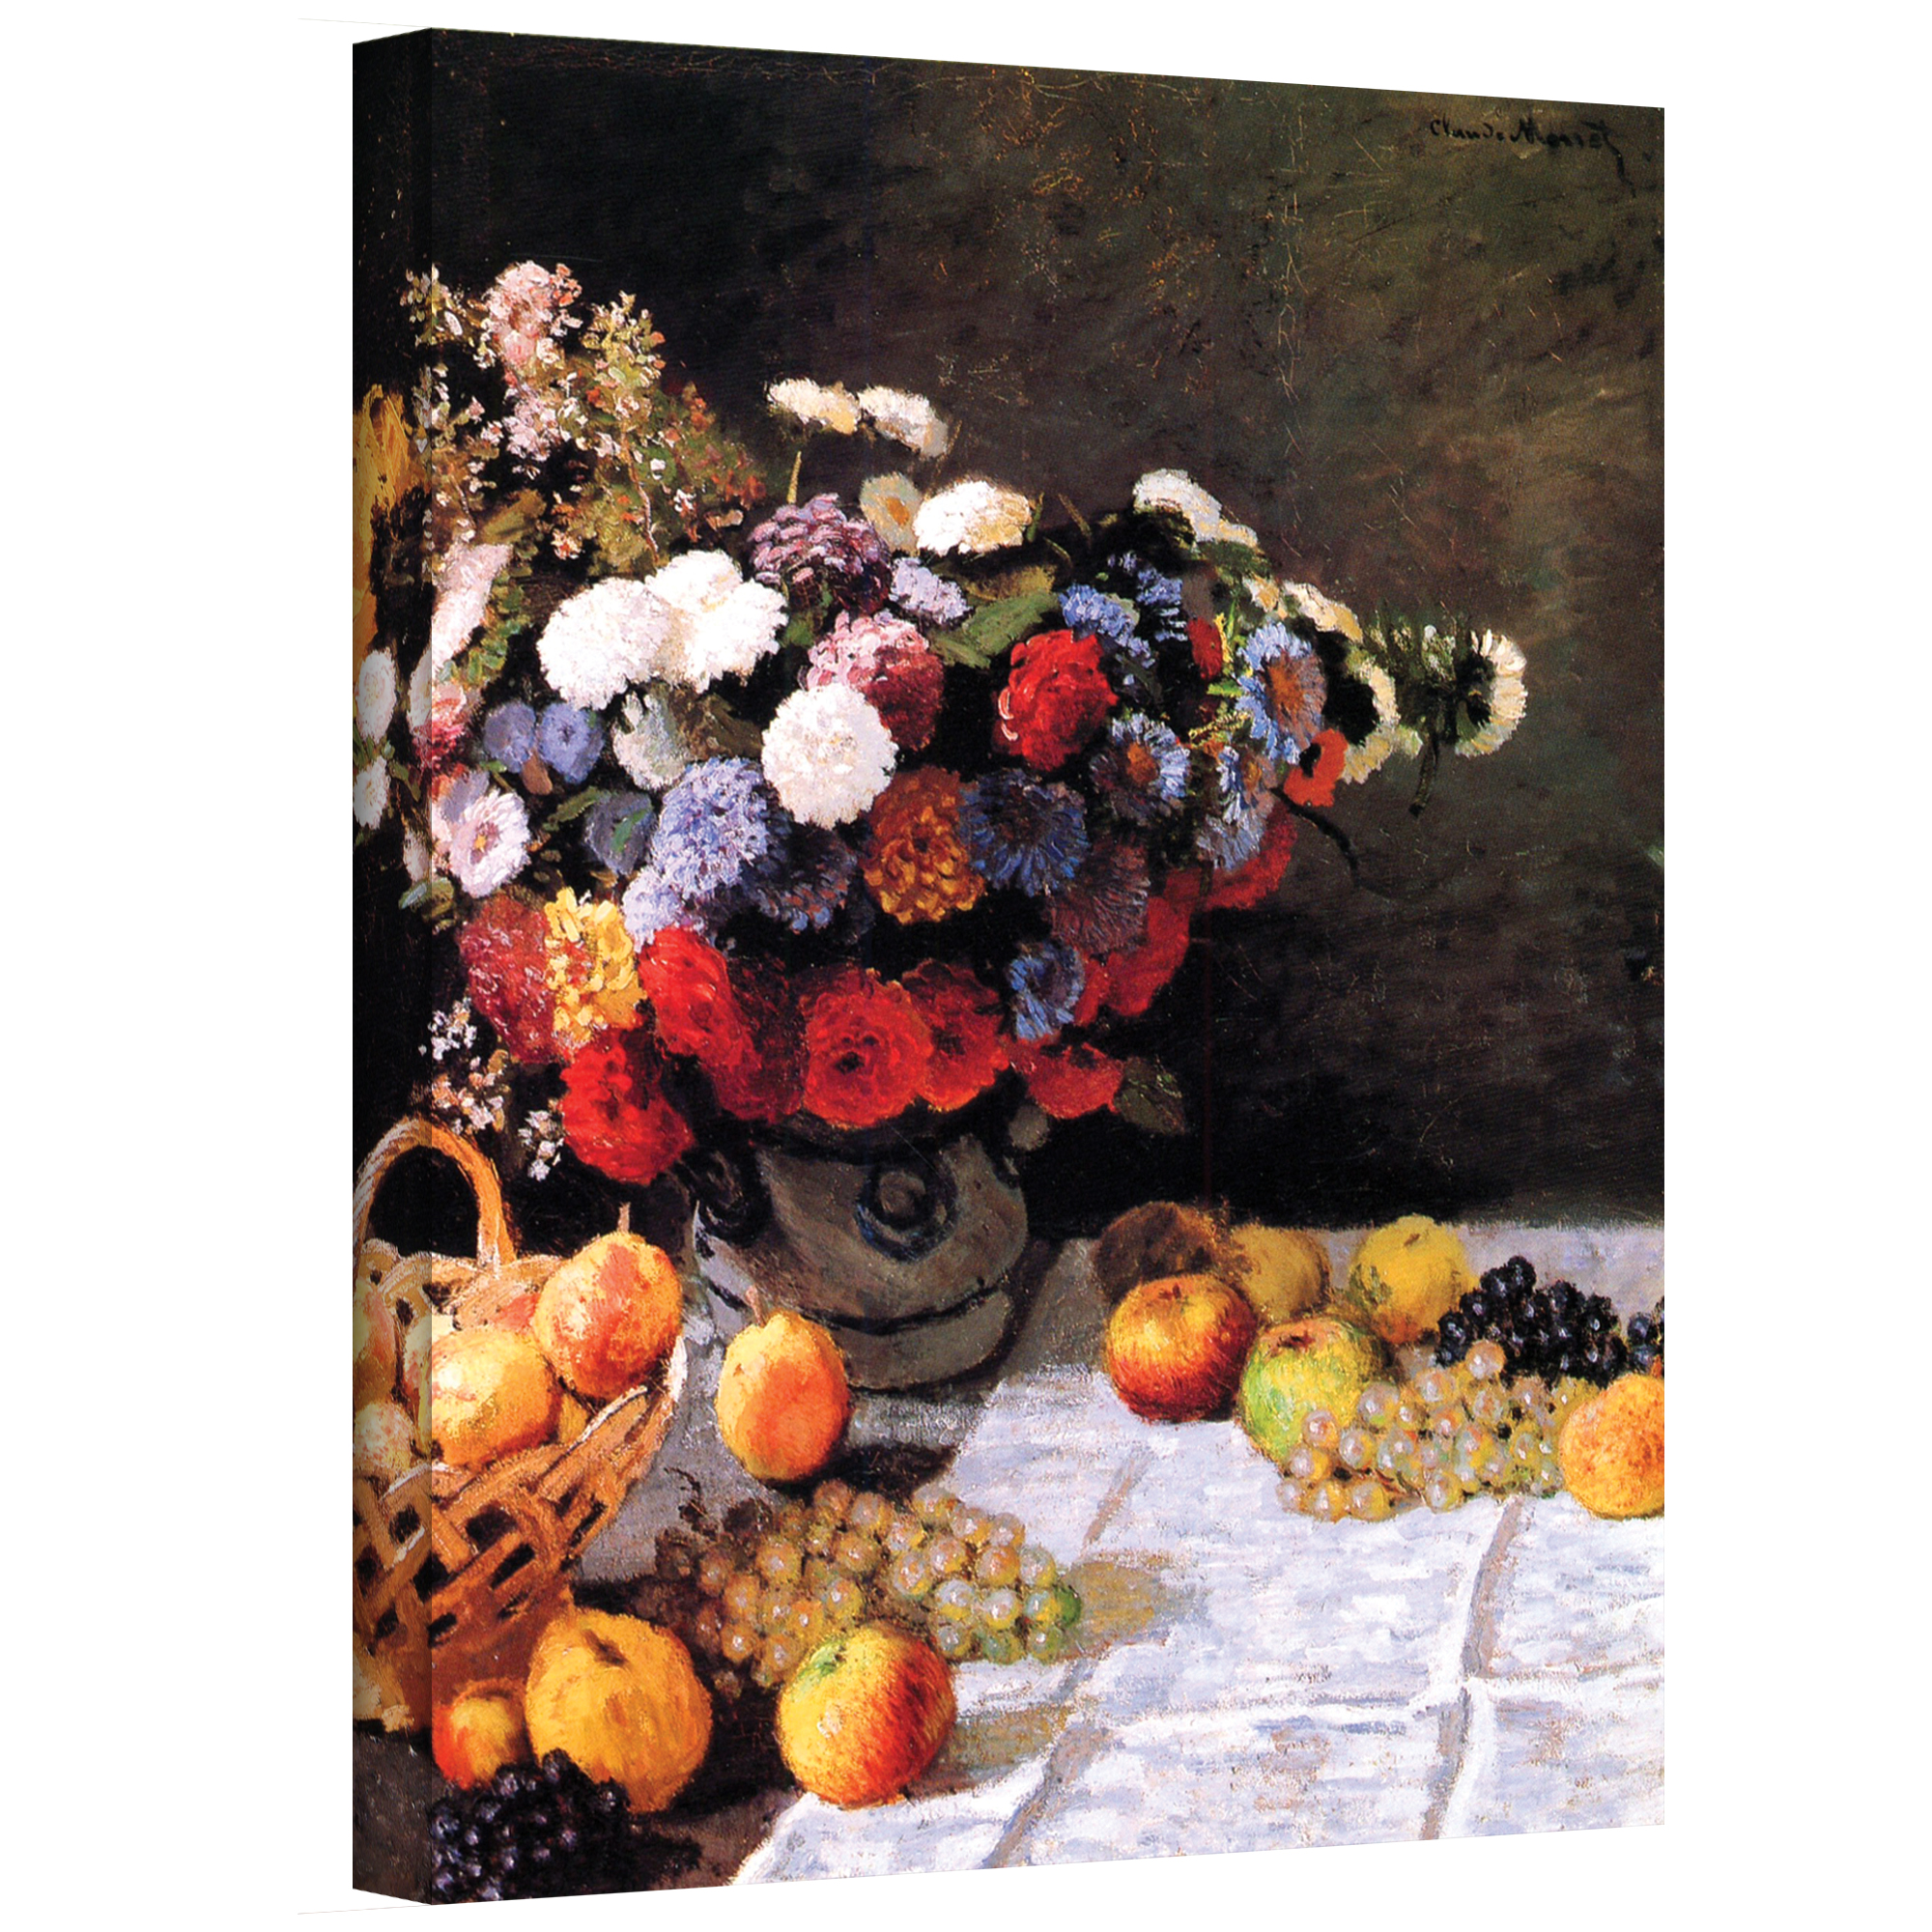 Flowers and Fruit' Gallery wrapped Canvas Art Print